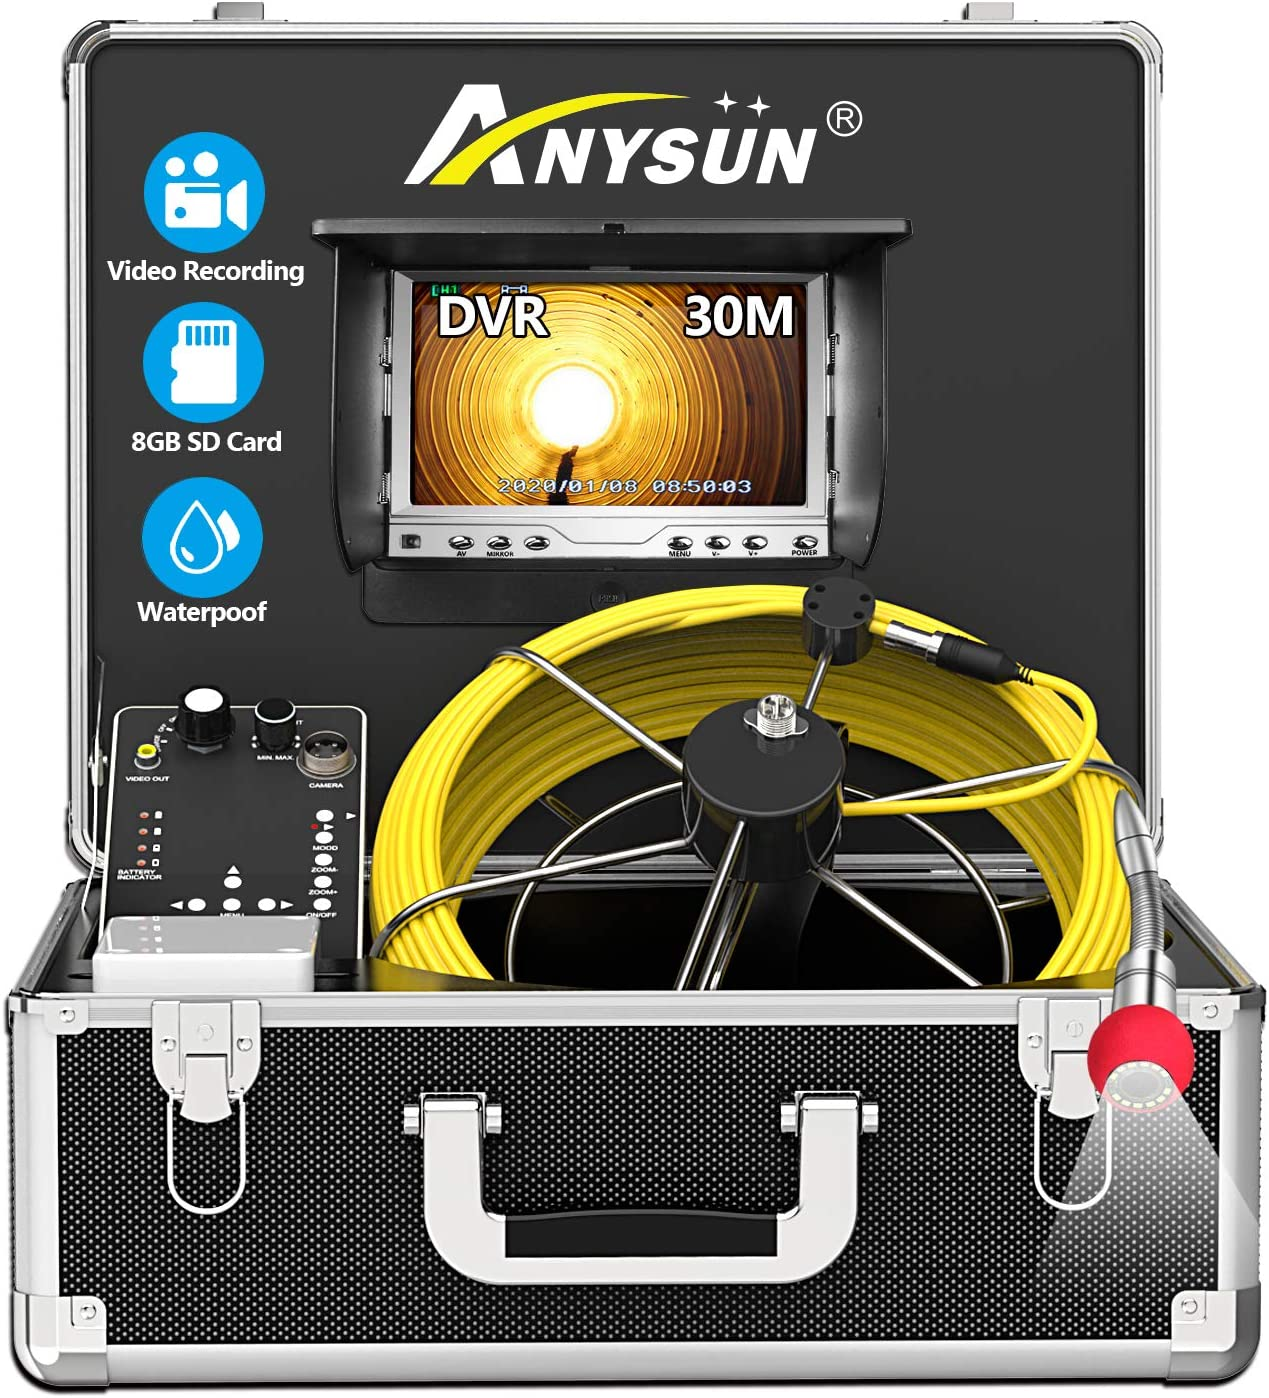 Pipe Sewer Inspection Special price Camera Anysun 30m Pi IP68 Our shop OFFers the best service Drain Waterproof